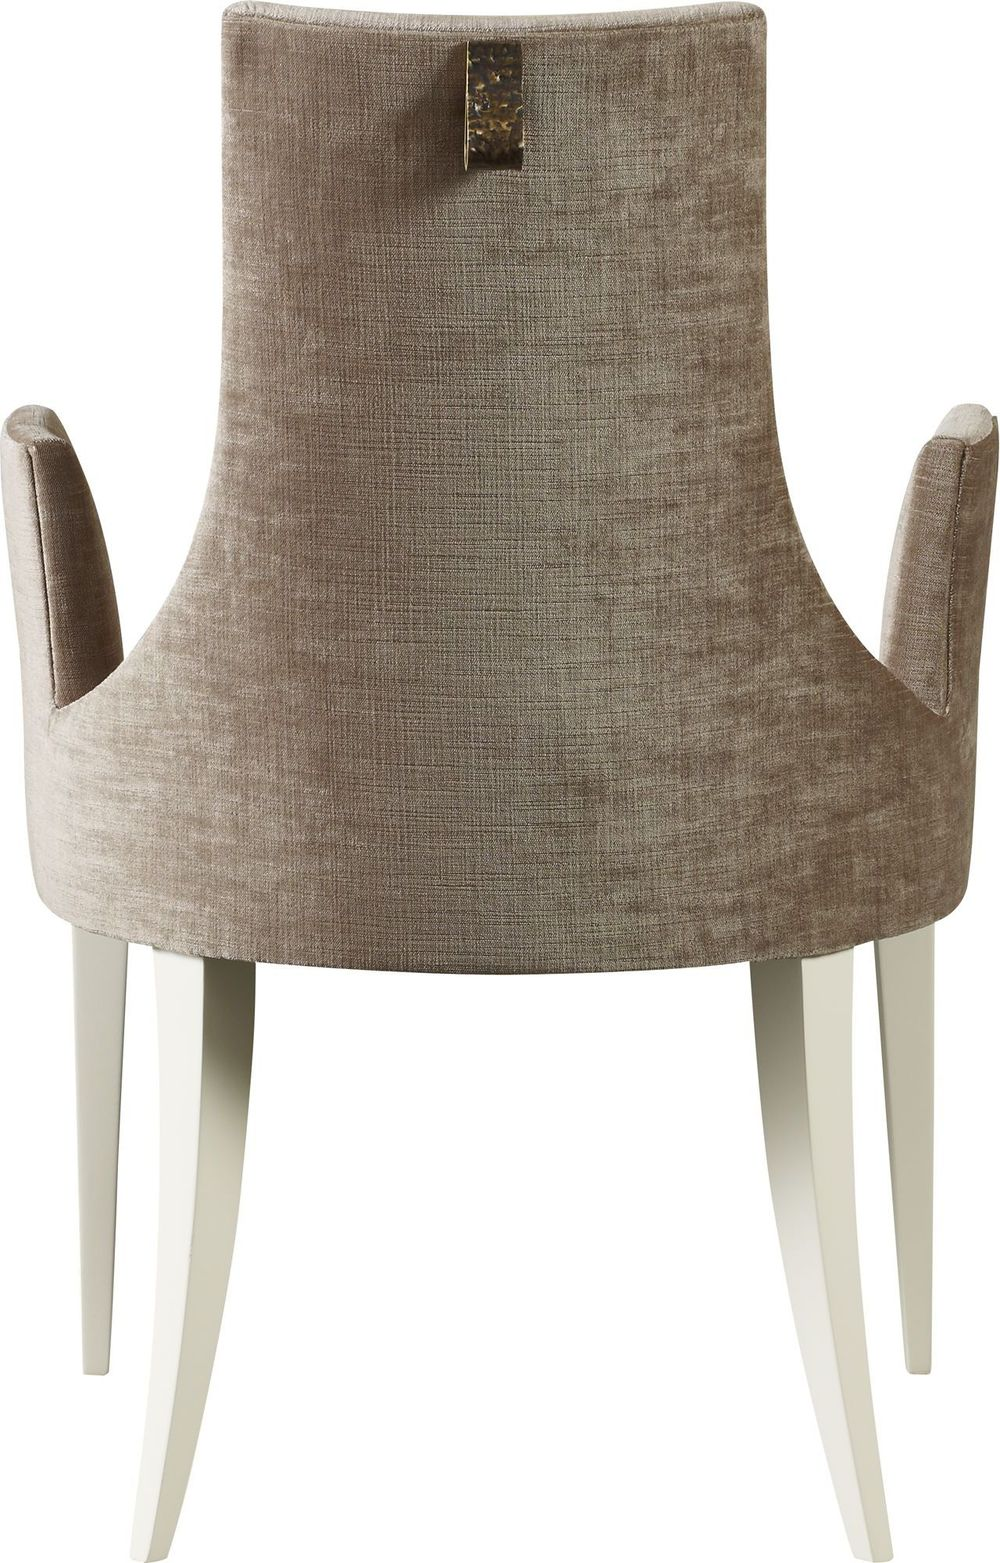 Baker Furniture - Shell Arm Chair